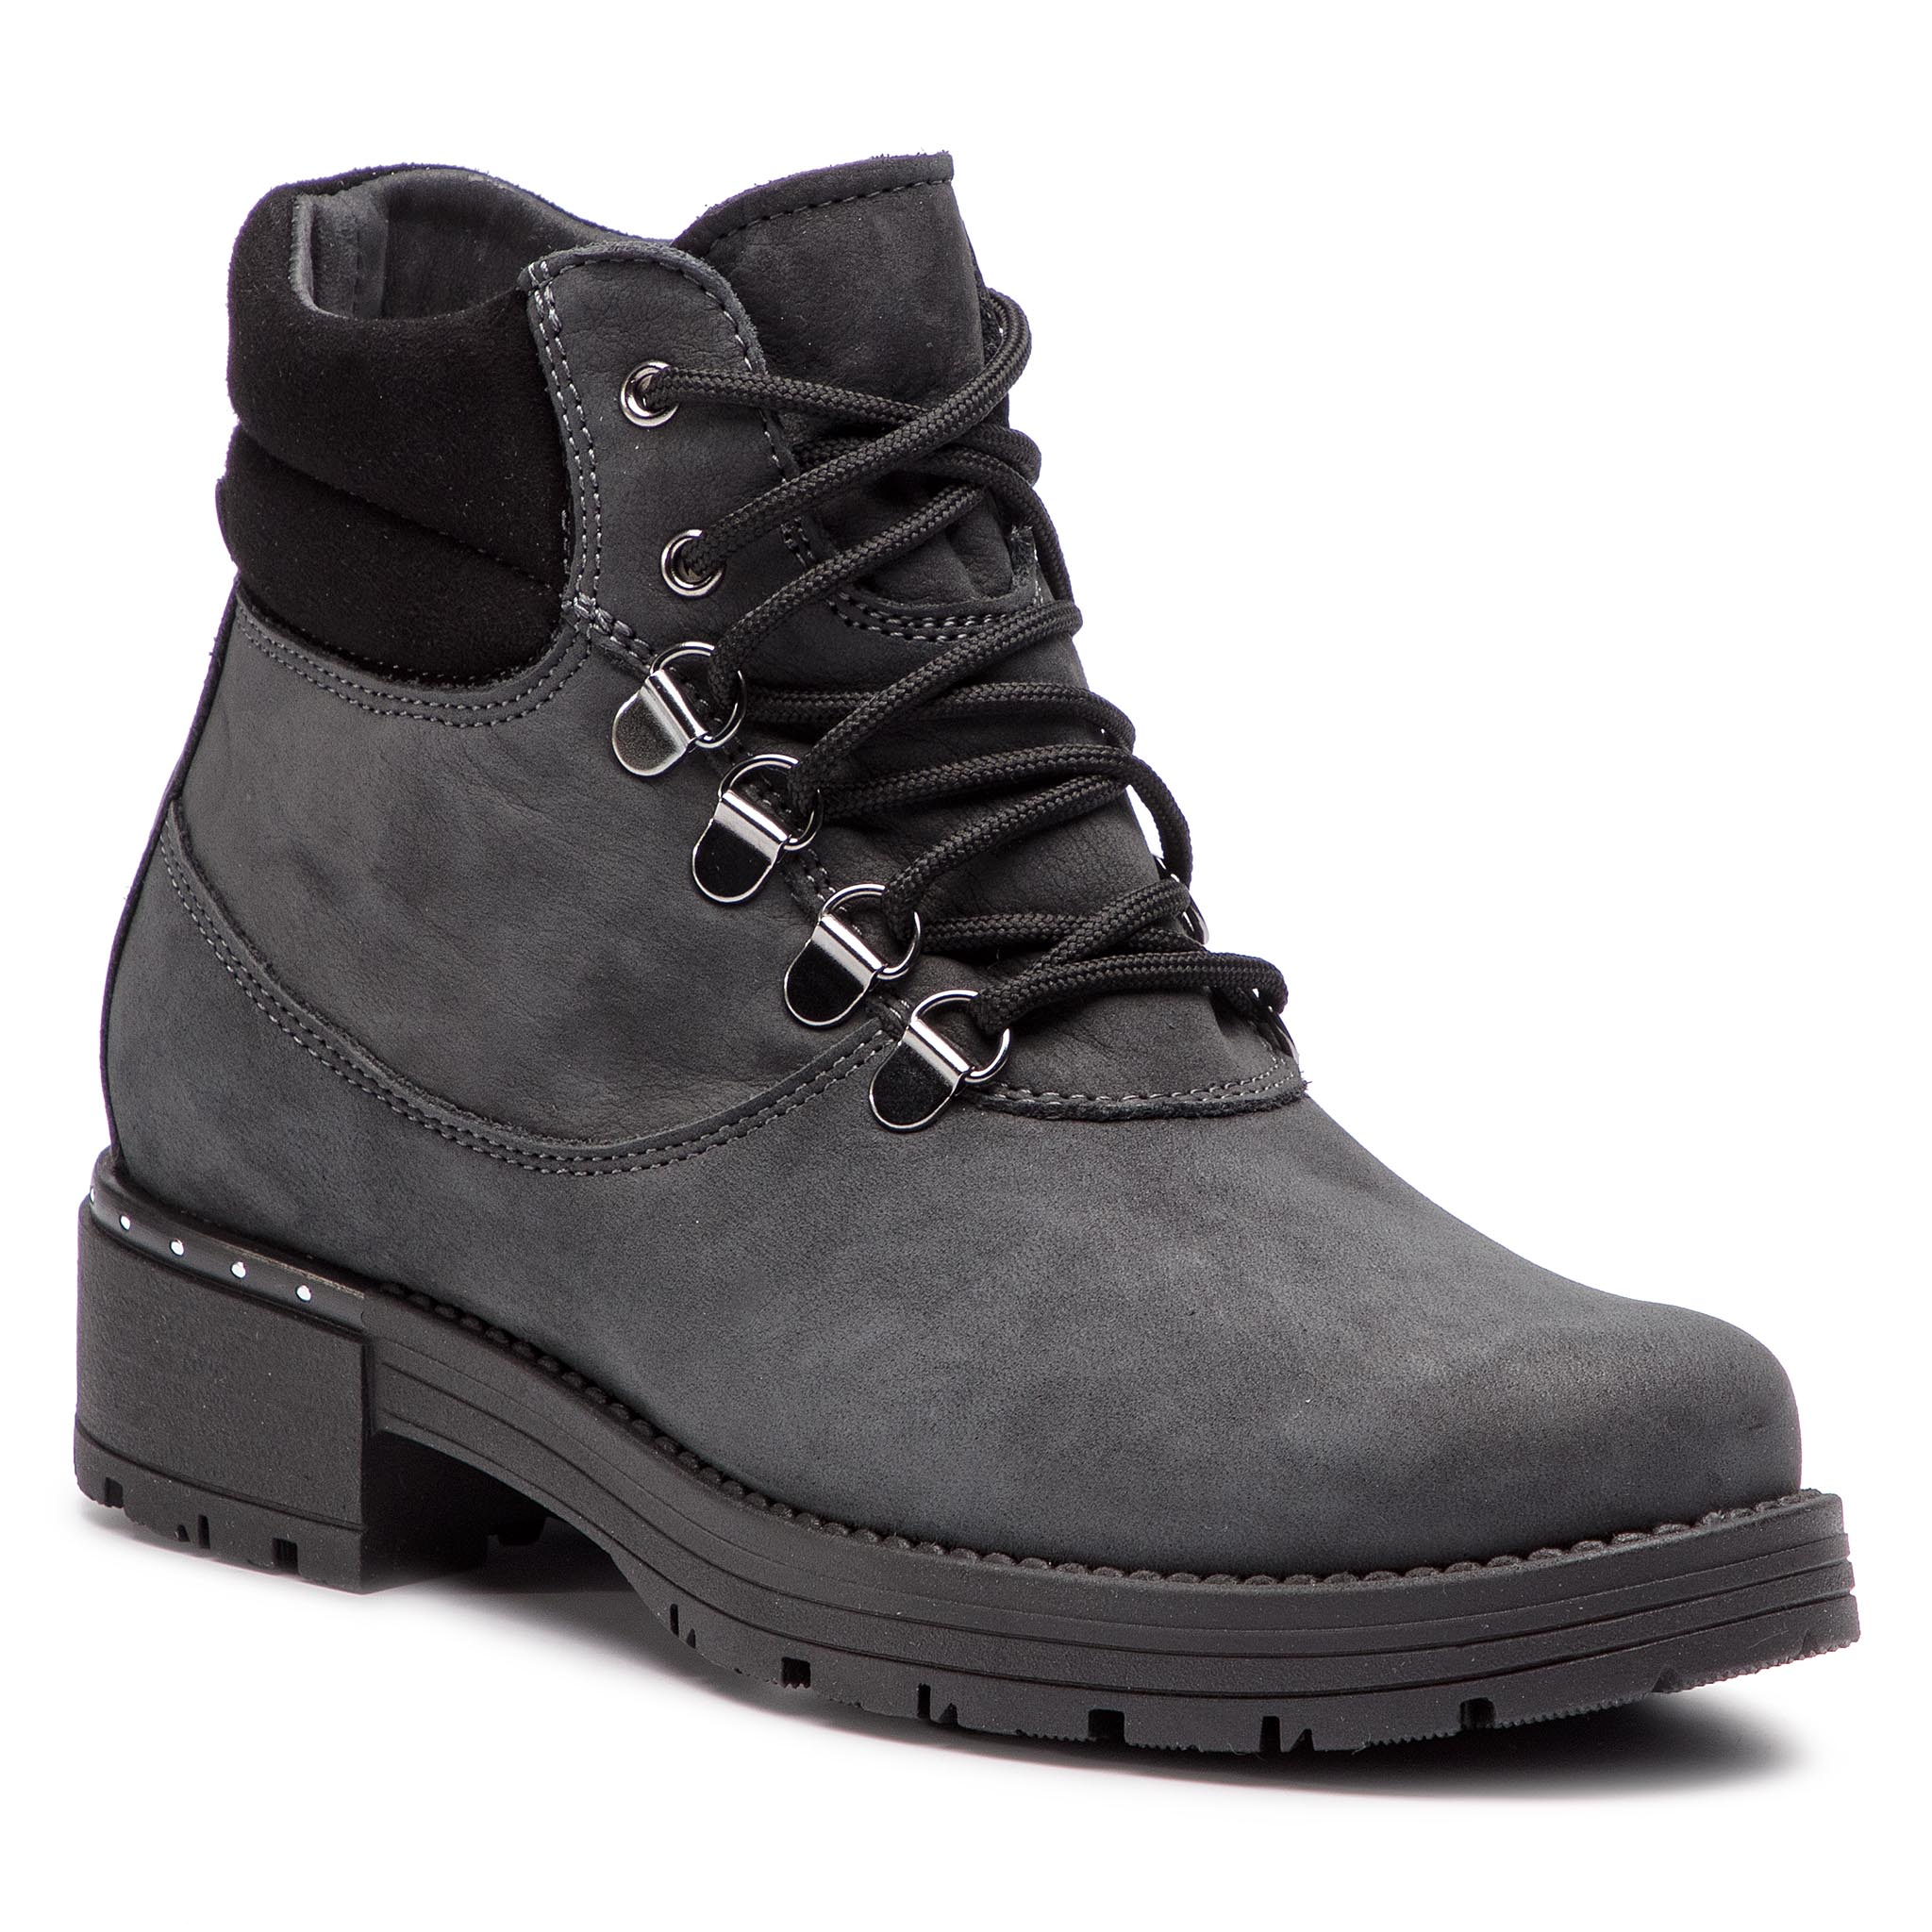 Bottines WASAK - 0491 Grafit Nubuk